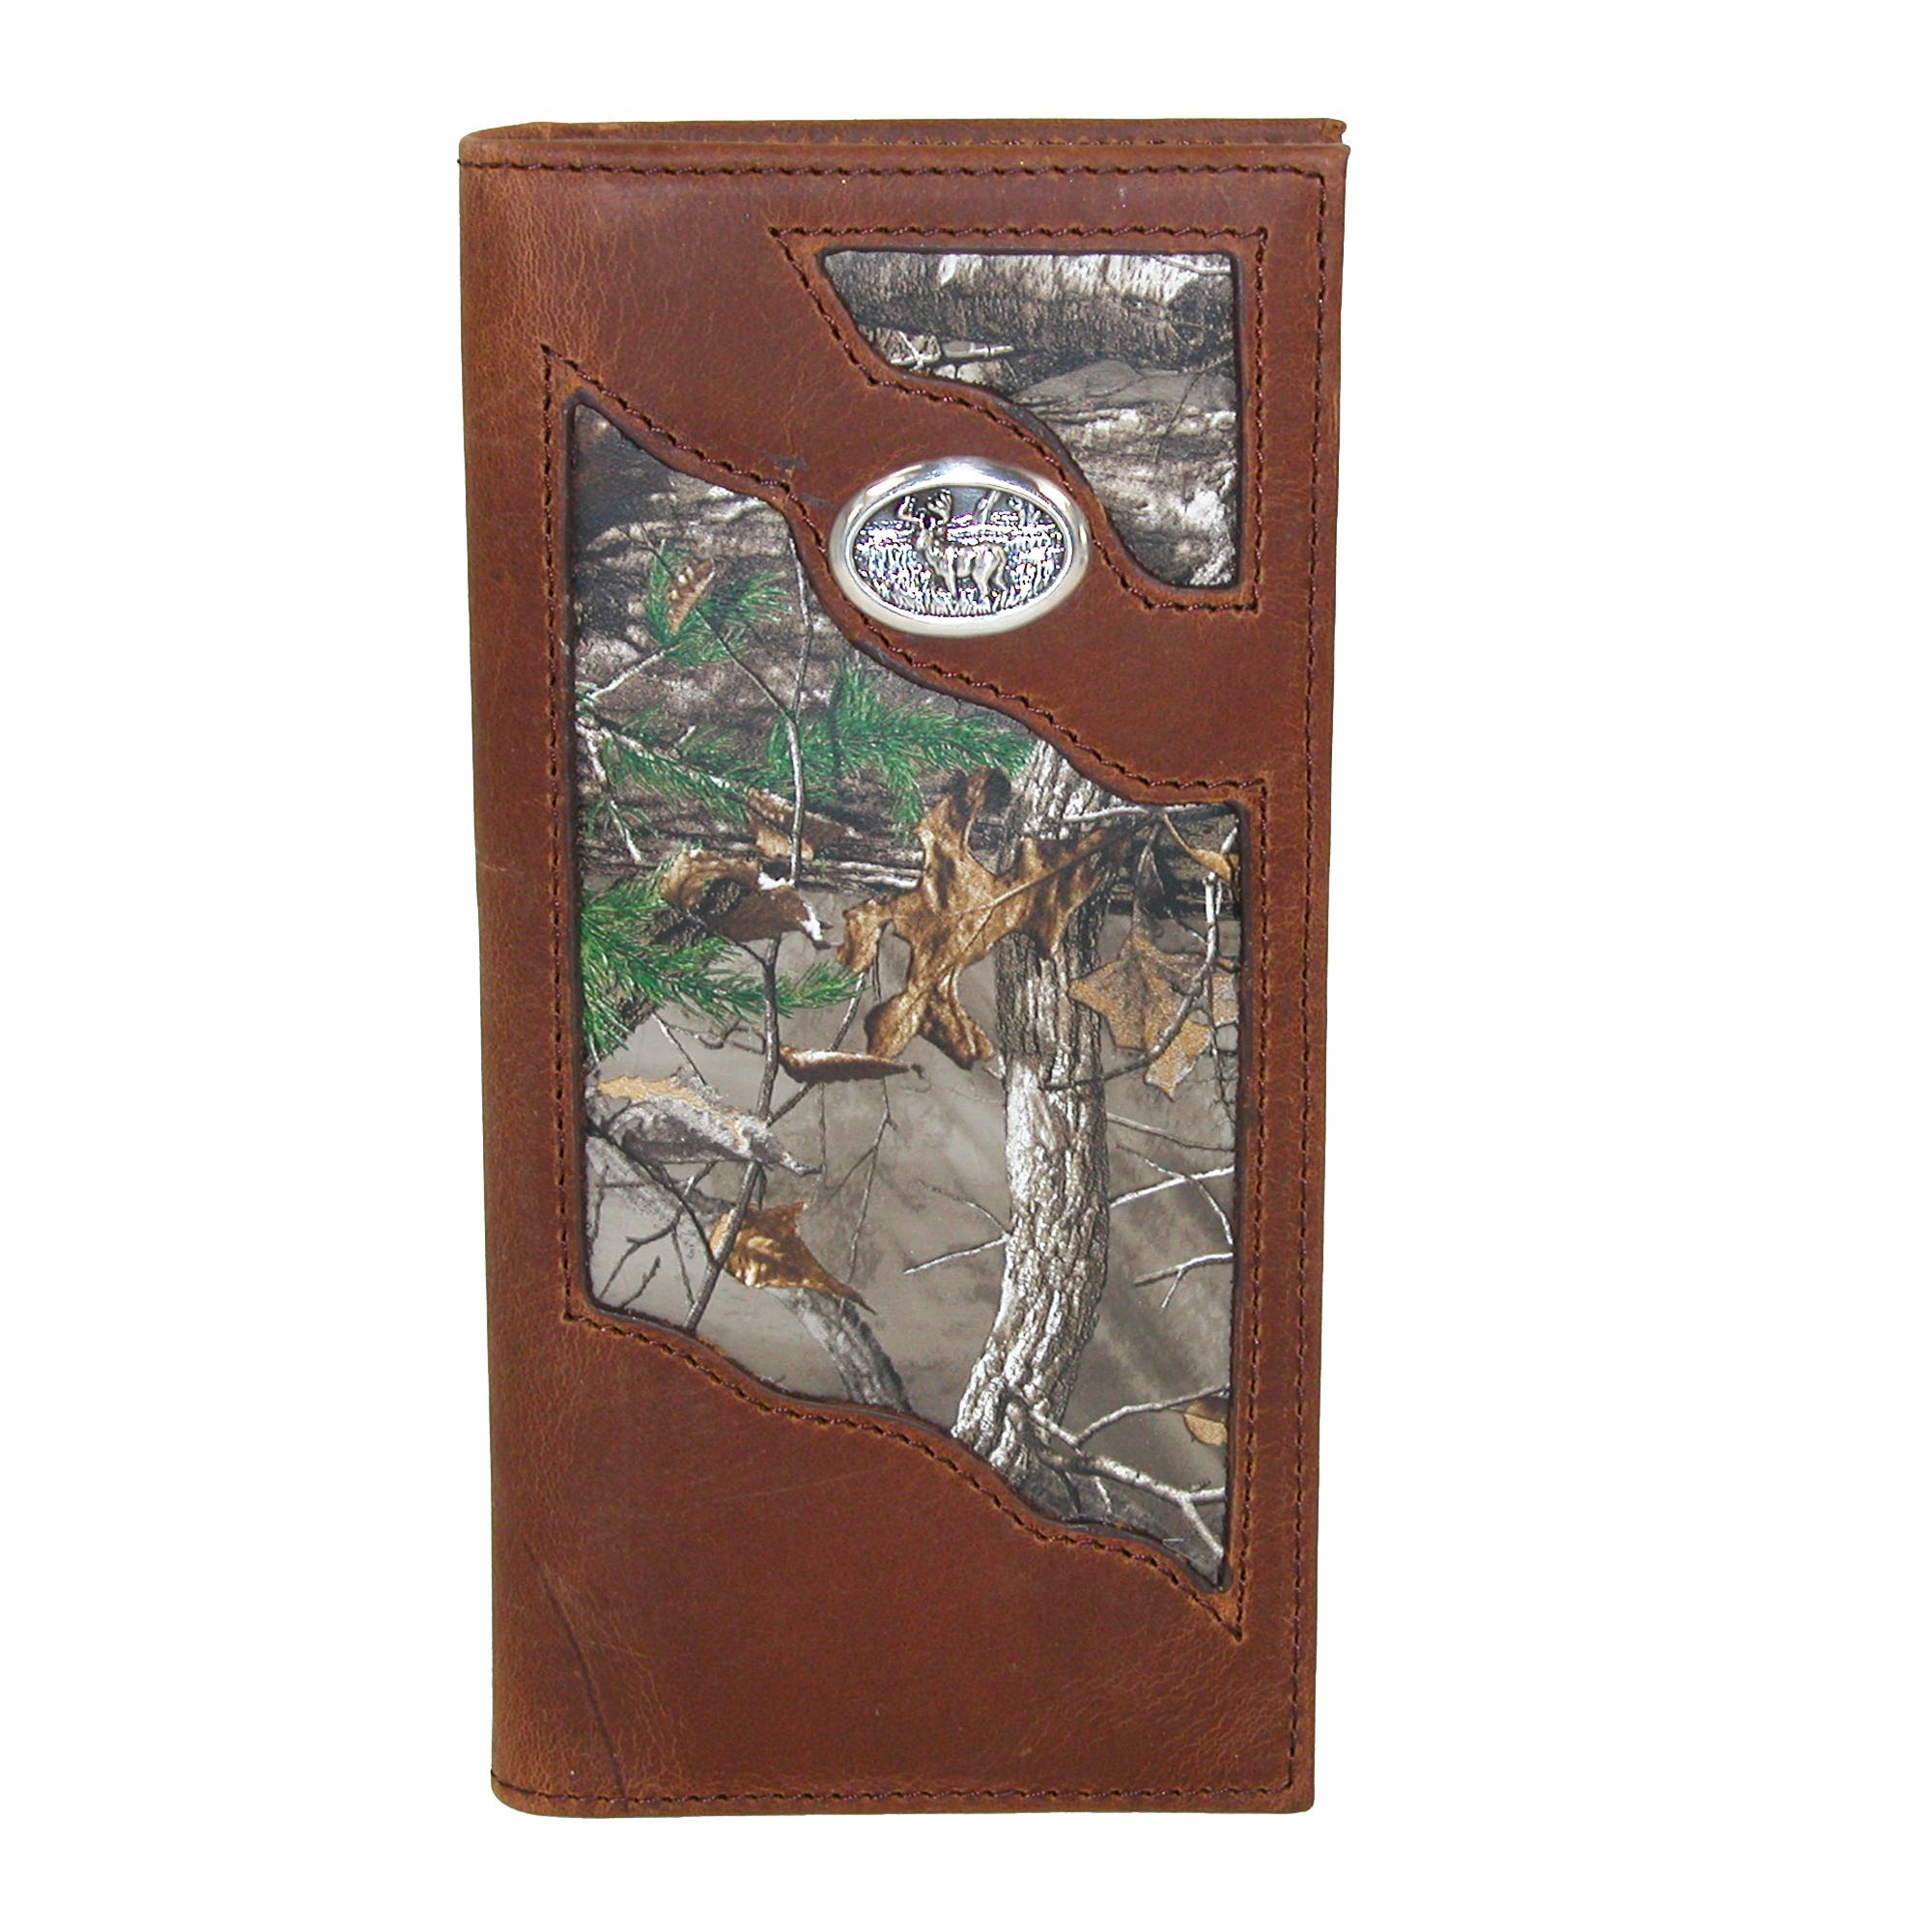 3 D Belt Company Men's Leather Camouflage Checkbook Wallet With Deer Concho